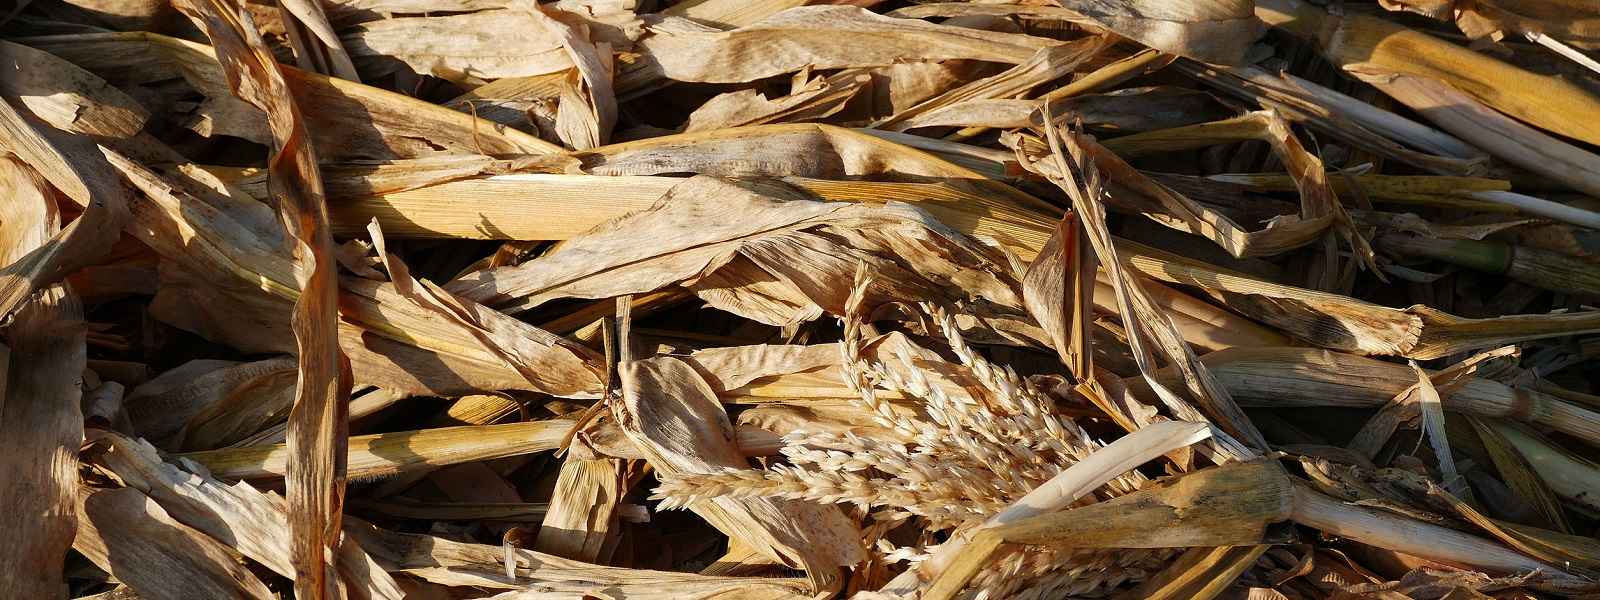 rotten corn plant residues, garden remains, dried corn plant,